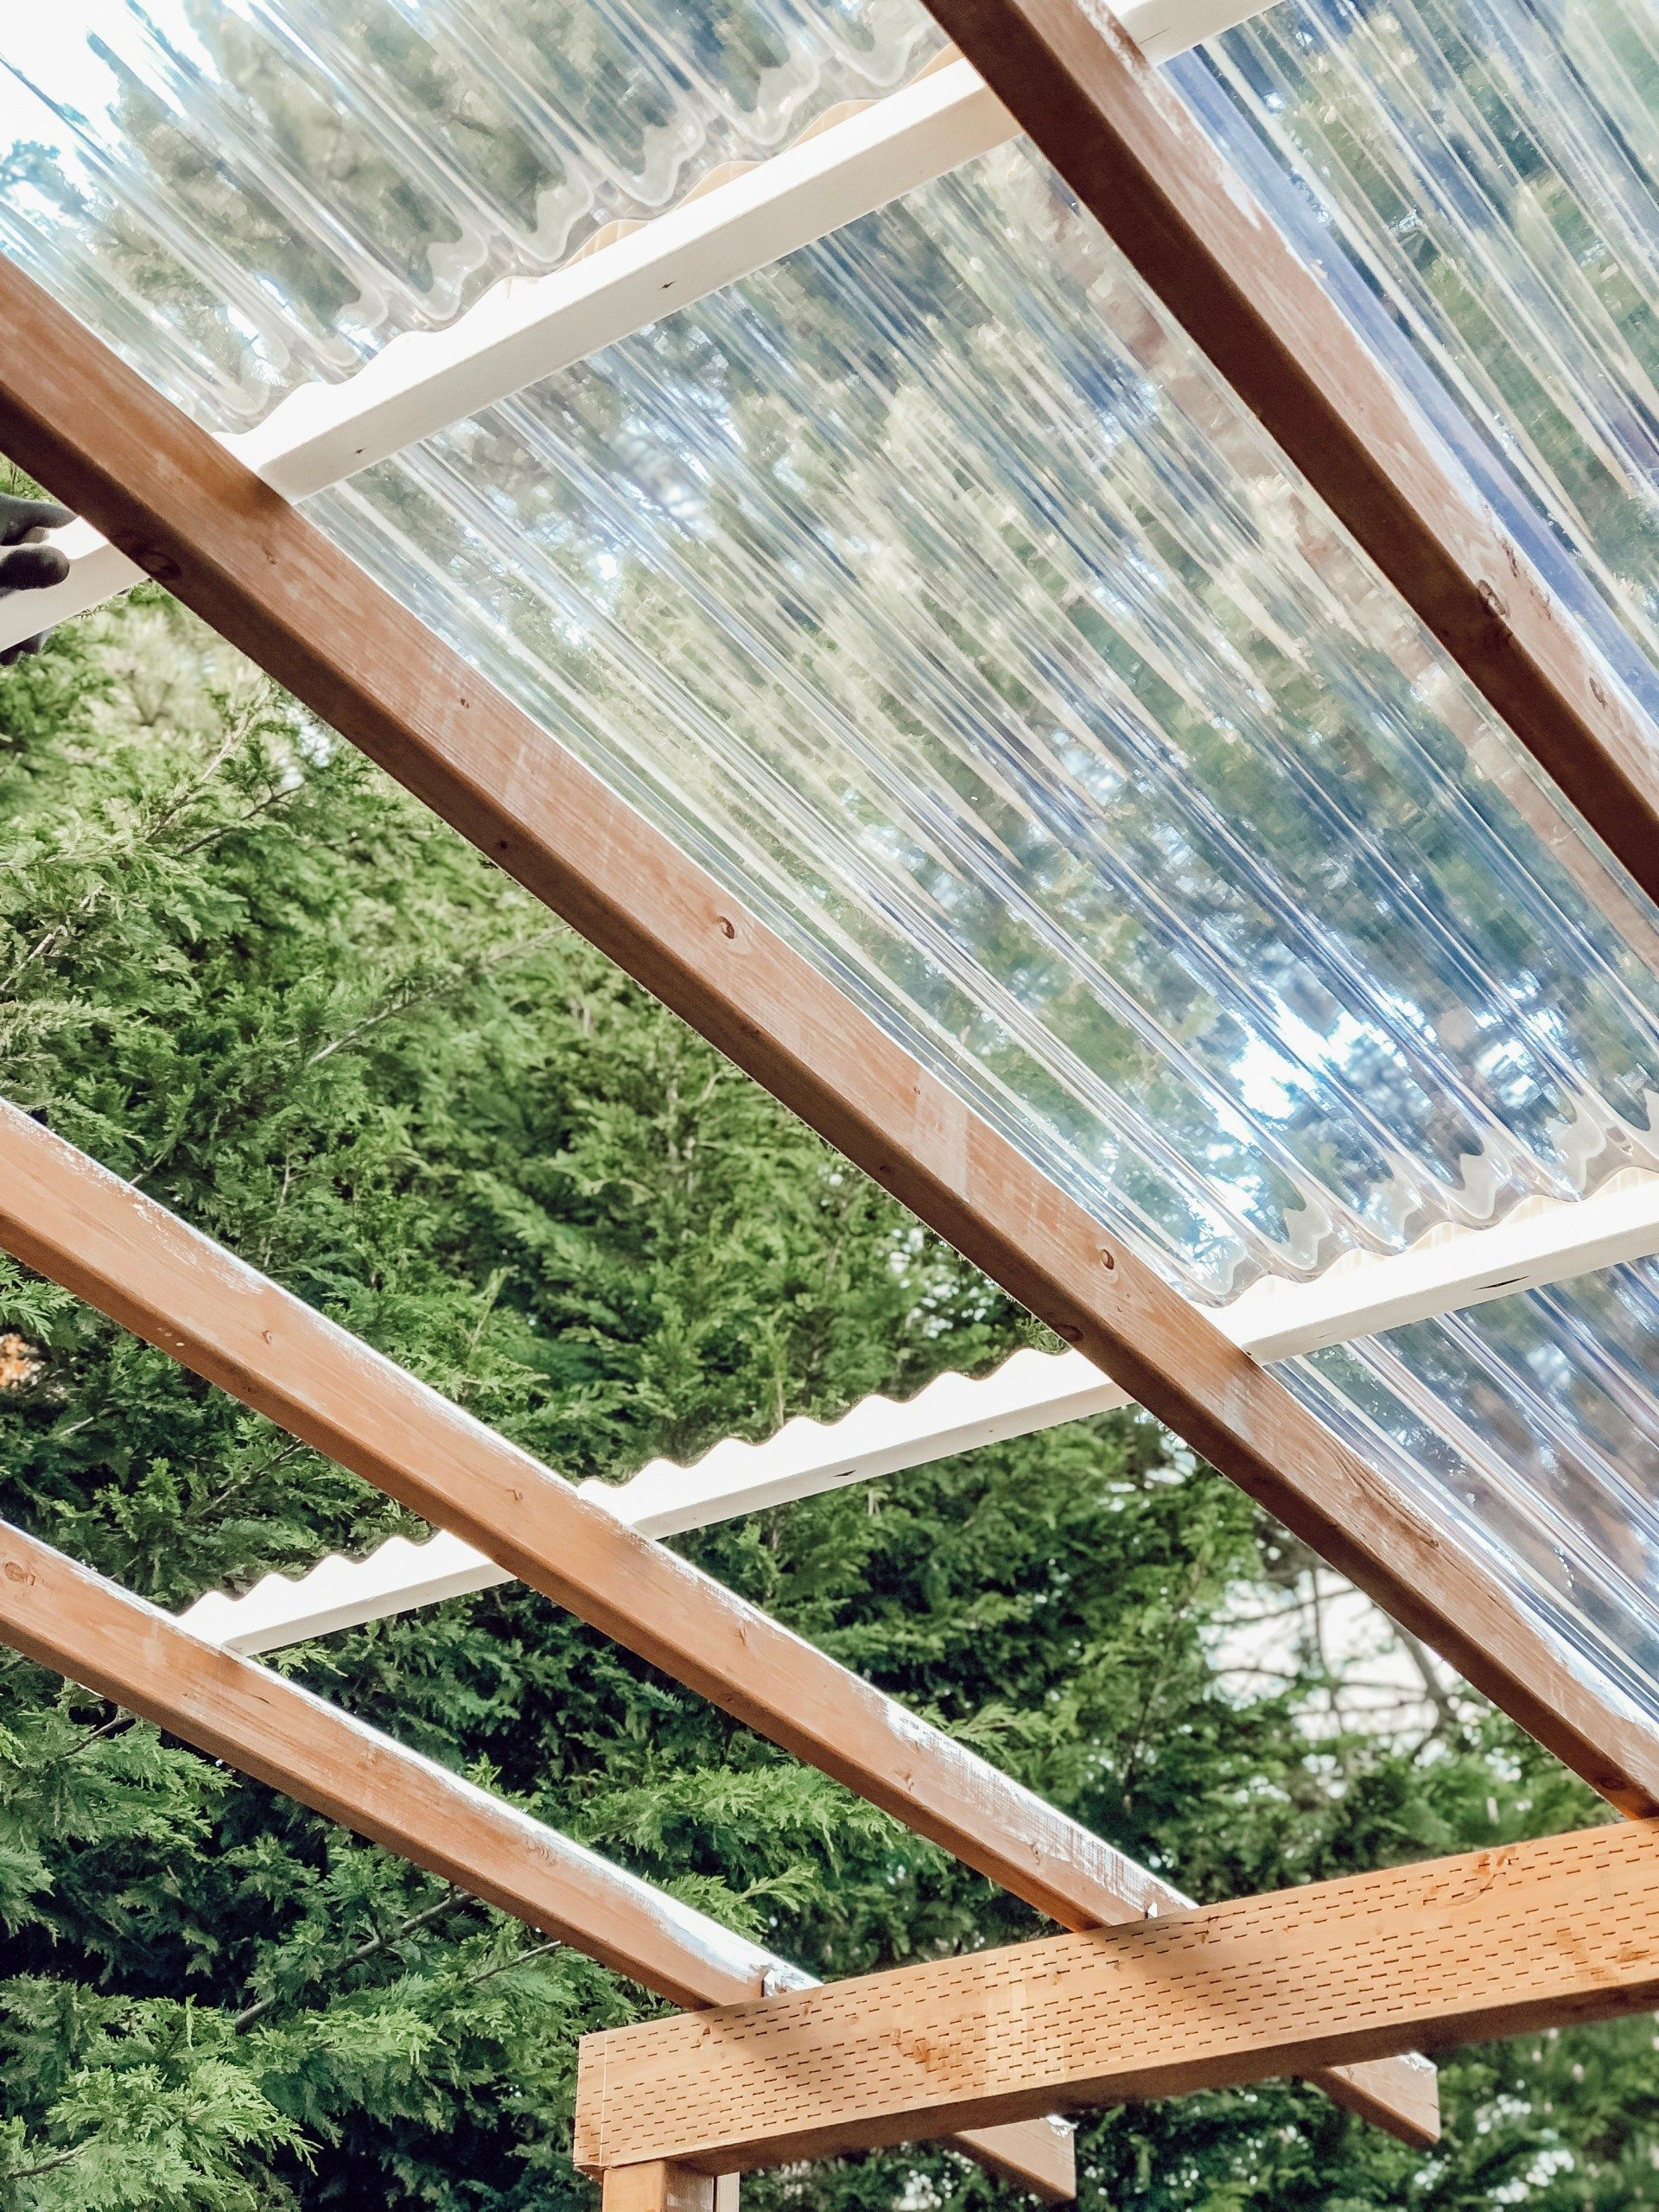 Diy Clear Corrugated Covered Pergola Attached To The House And An Existing Deck Rain And Pine In 2020 Deck With Pergola Covered Pergola Pergola With Roof